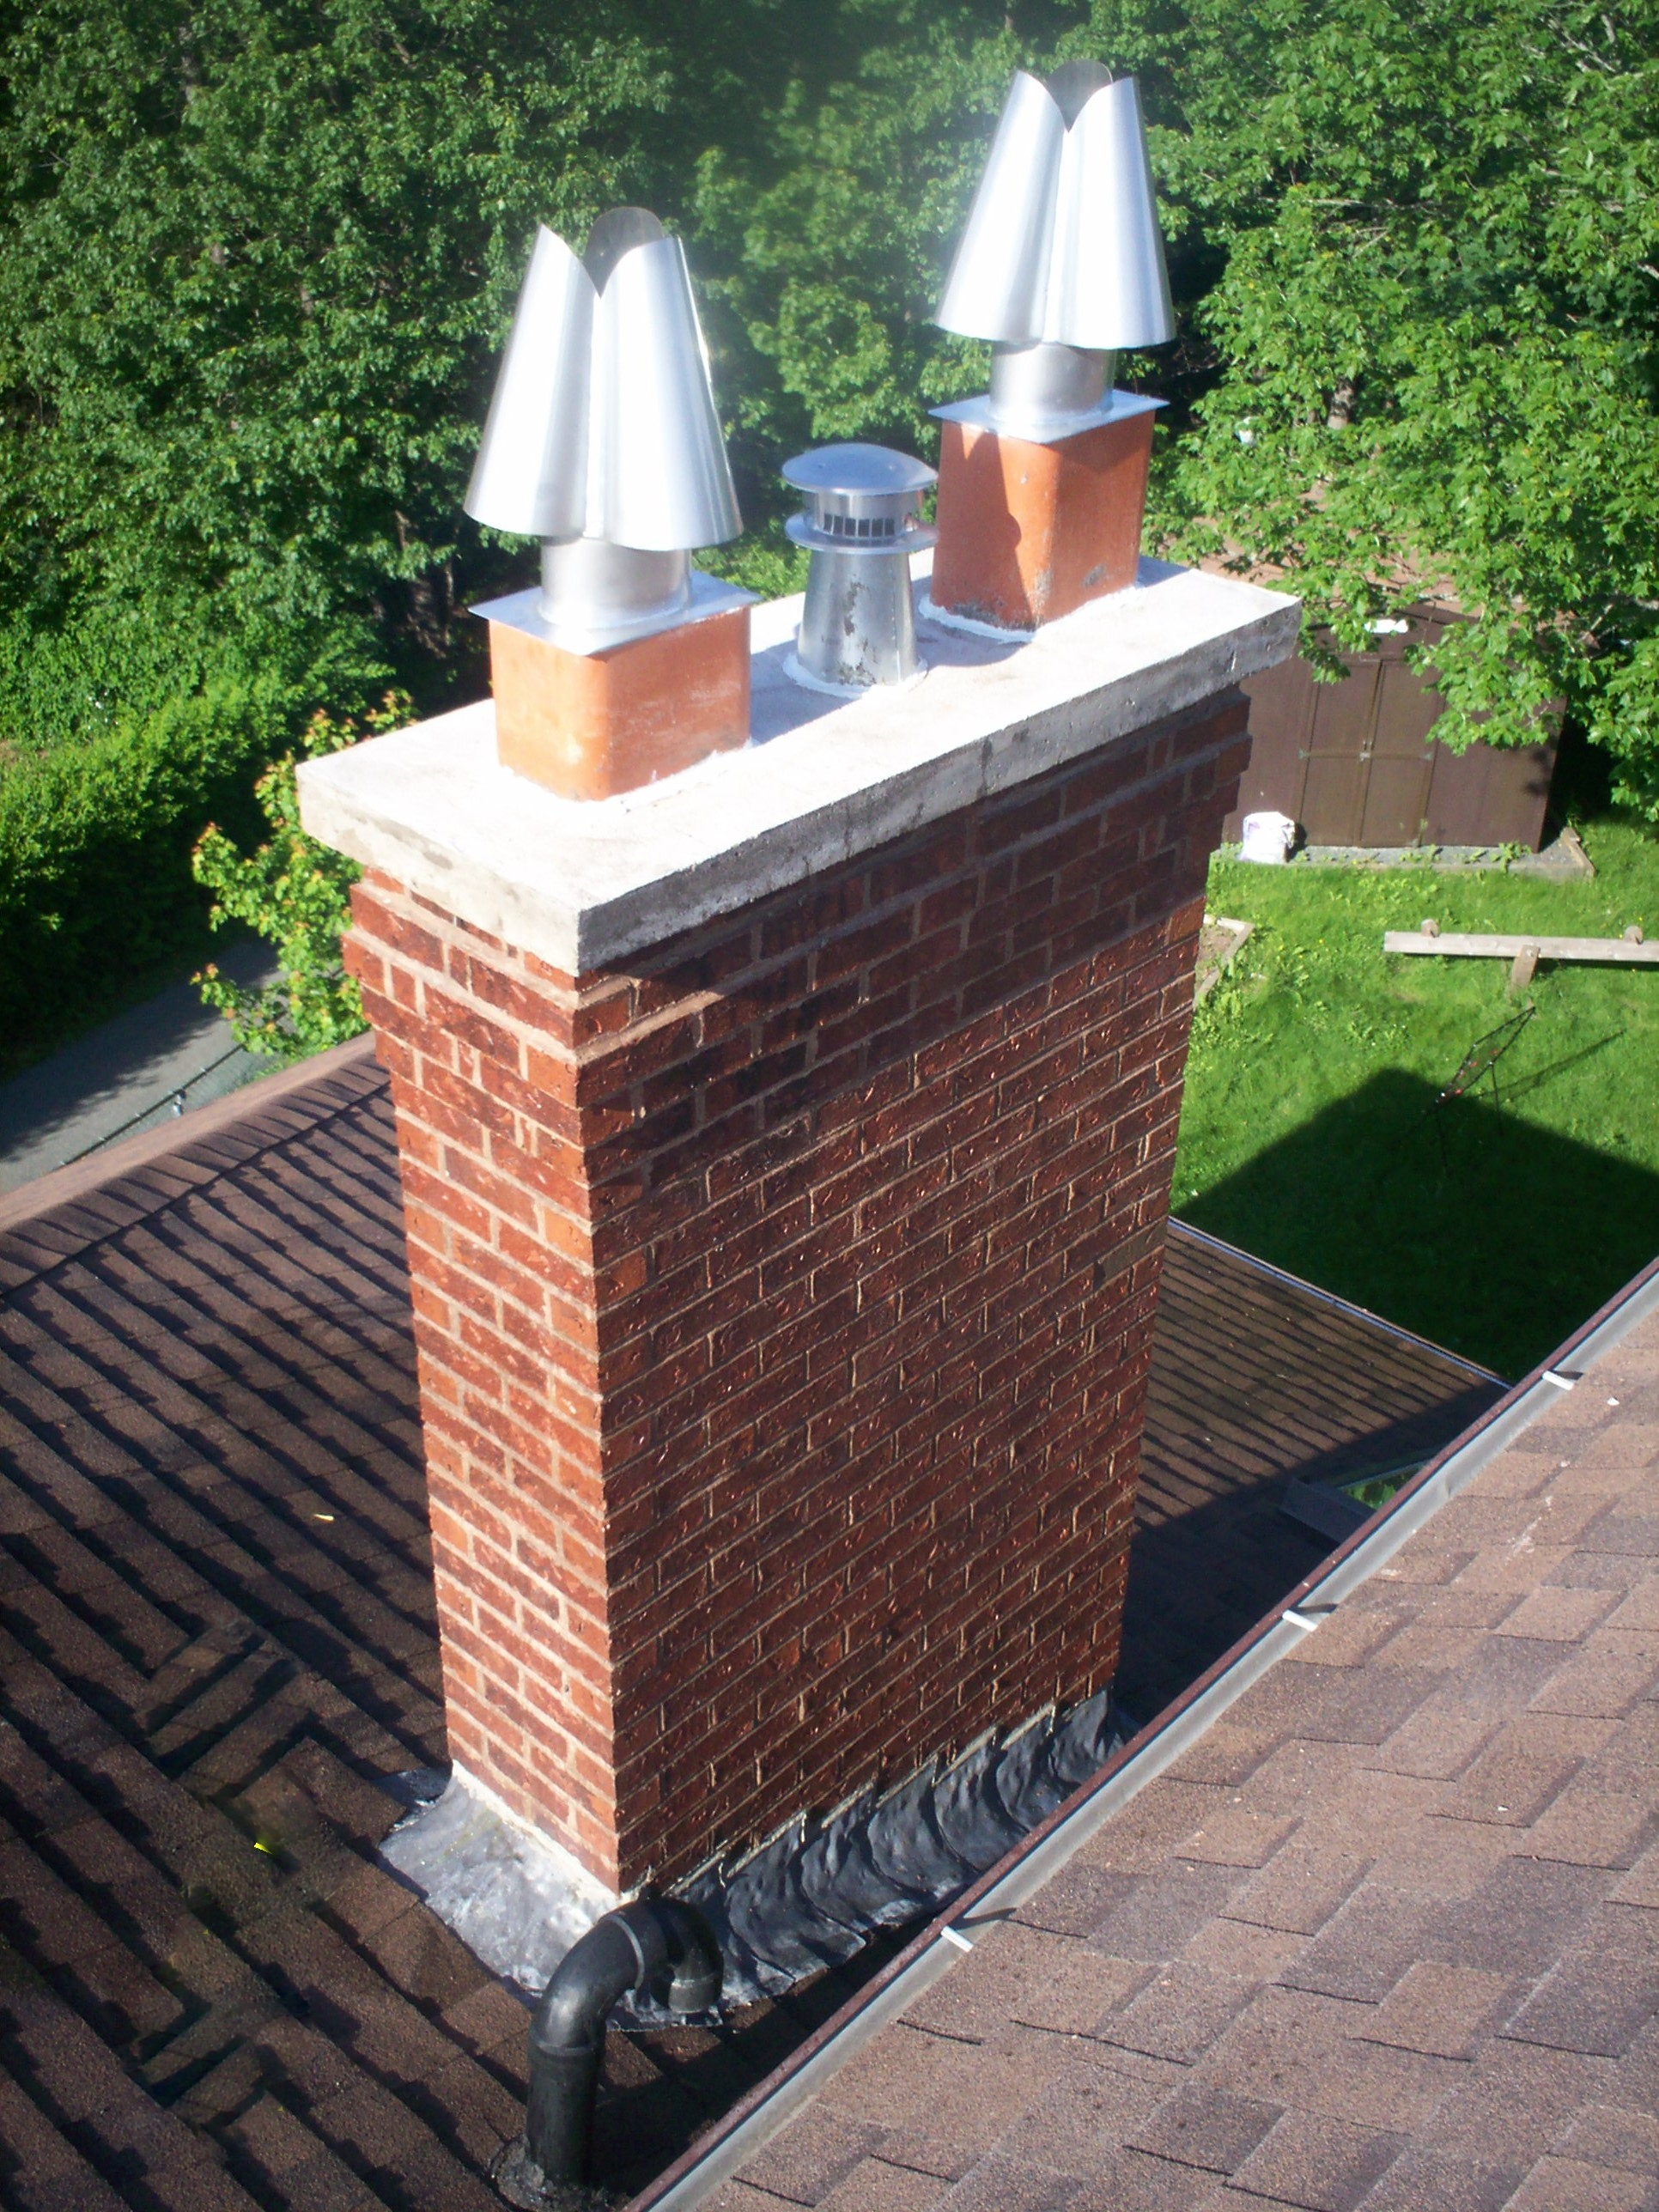 image of masonry repair-masonry repair services completed in Halifax-Dartmouth Regional Municipality, NS by Pro Chimney Services based in Halifax, NS servicing all of the Halifax-Dartmouth Regional Municipality,Bedford, Sackville, Mount Uniacke, Hantsport, Windsor, Wolfville, Kentville, Chester Basin, Mahone Bay, Lunenburg, Bridgewater, Liverpool, Fall River, Wellington, Enfield, Elmsdale, Brookfield, Truro, Musquodoboit Harbour & surrounding areas.